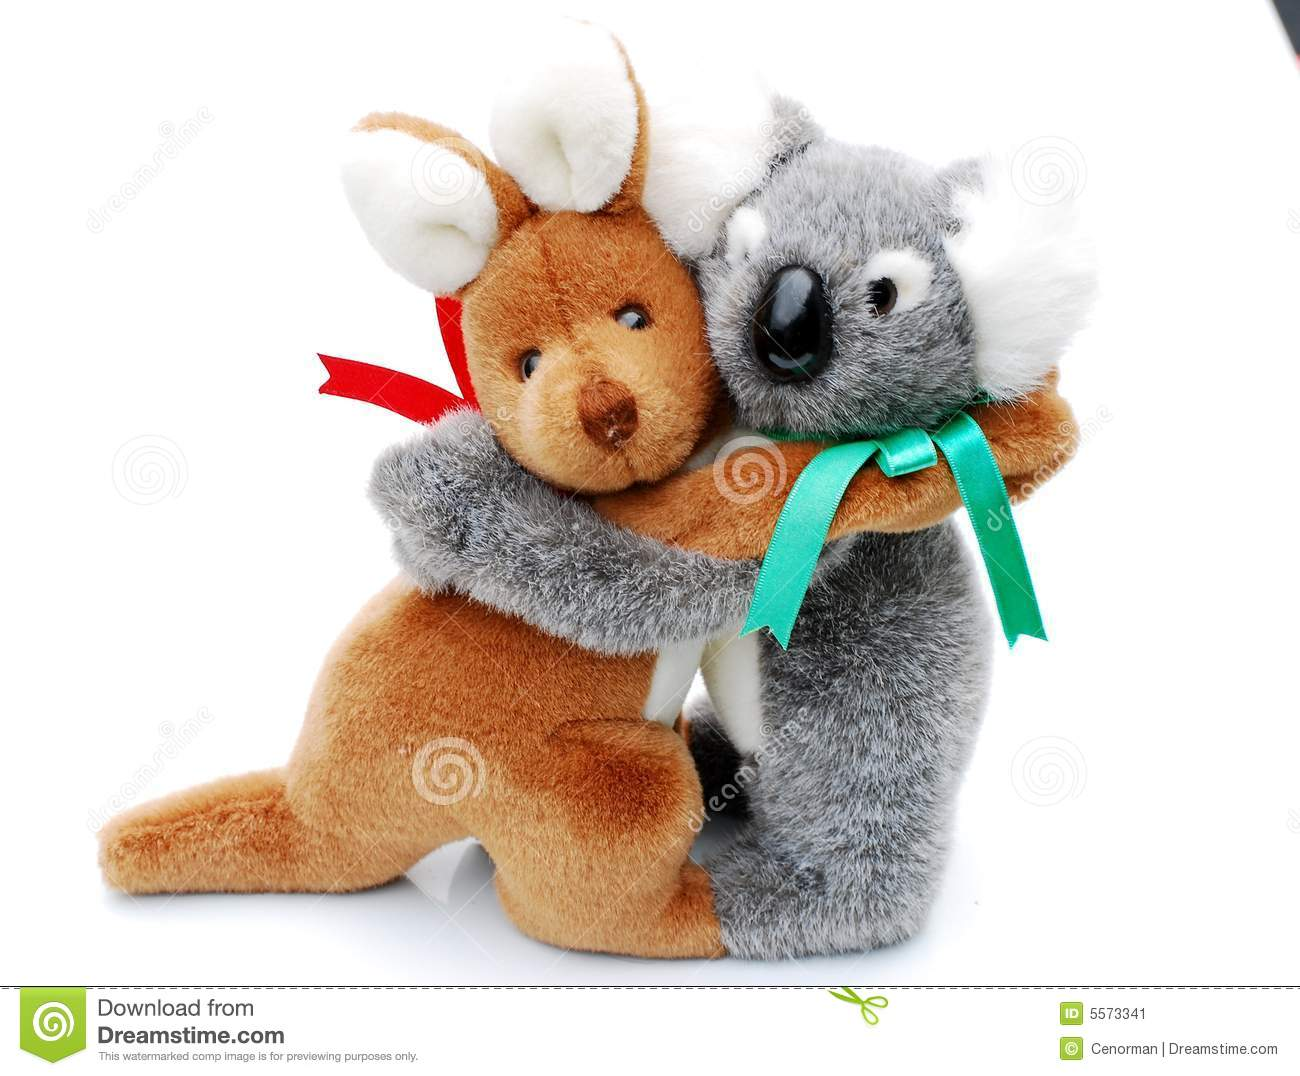 Kangaroo And Koala Stock Image - Image: 5573341